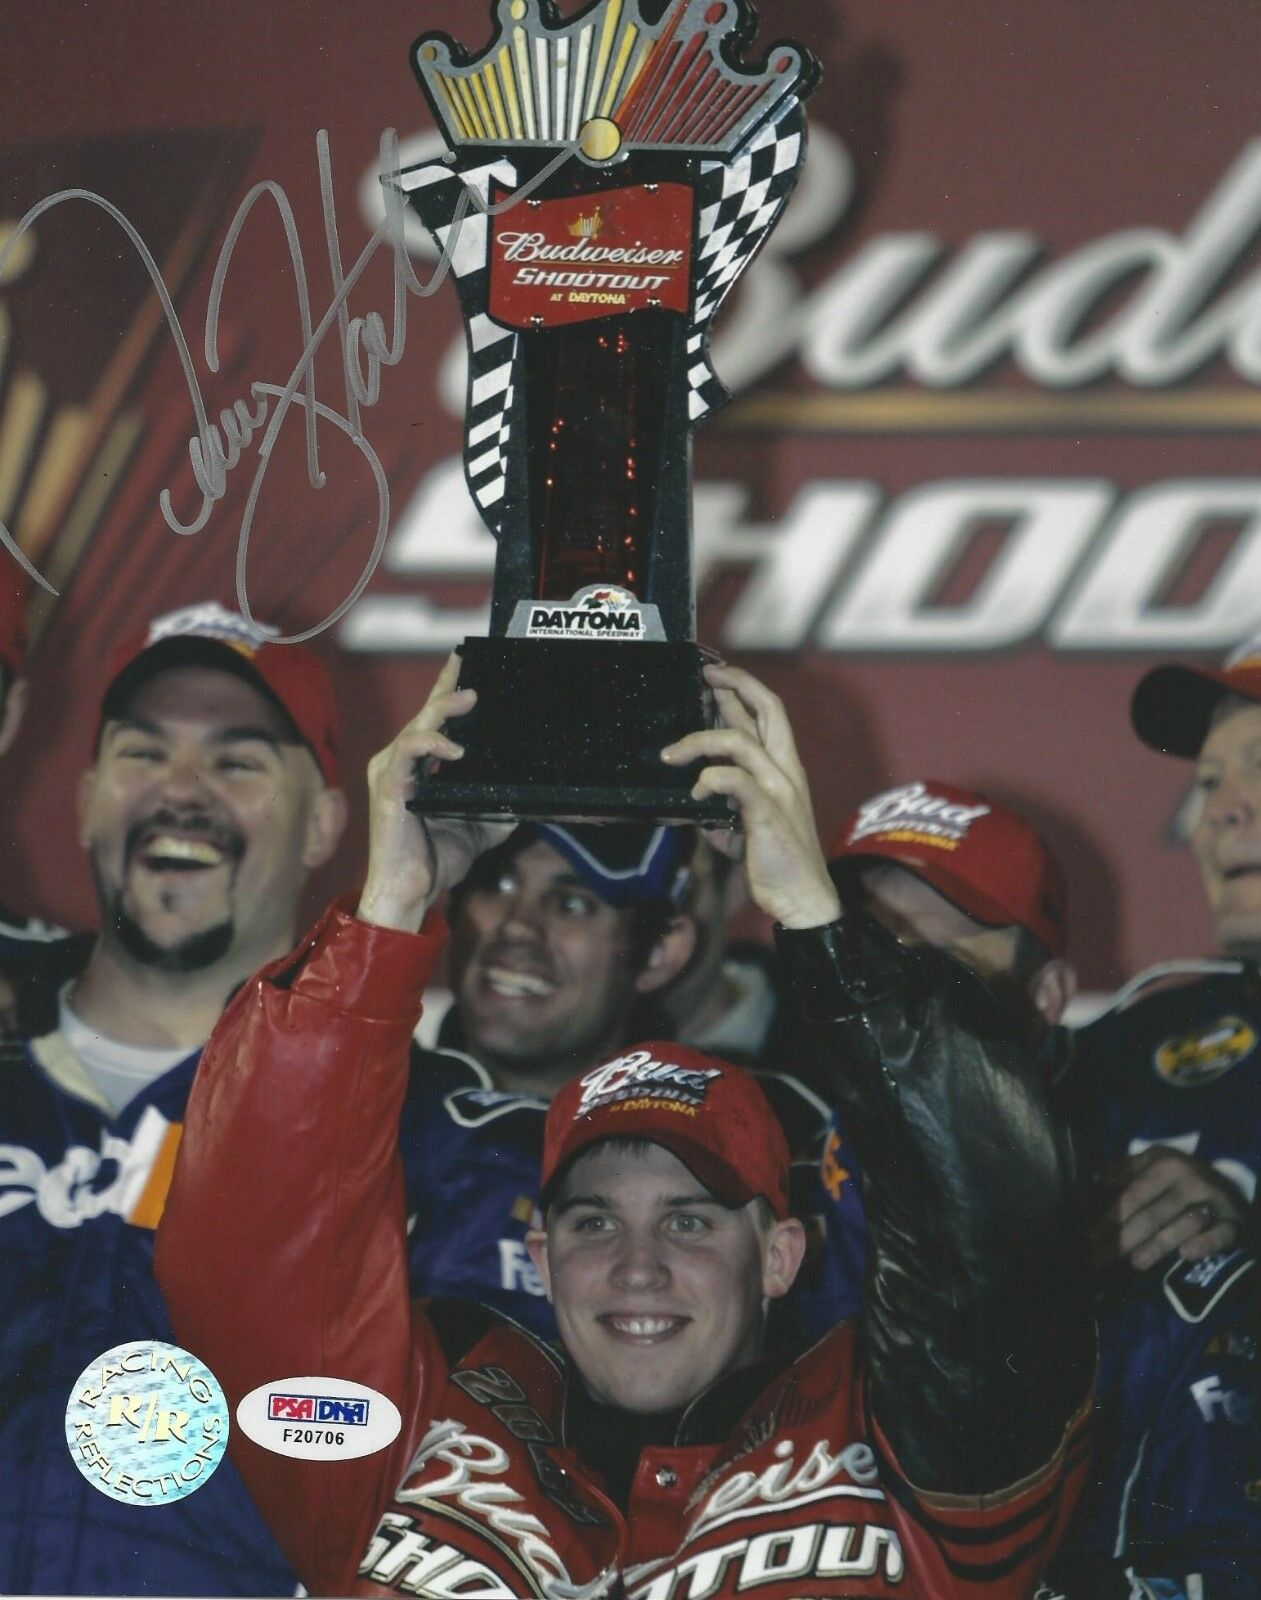 Denny Hamlin Signed Daytona Win 8x10 Photo PSA/DNA Cert # F20706